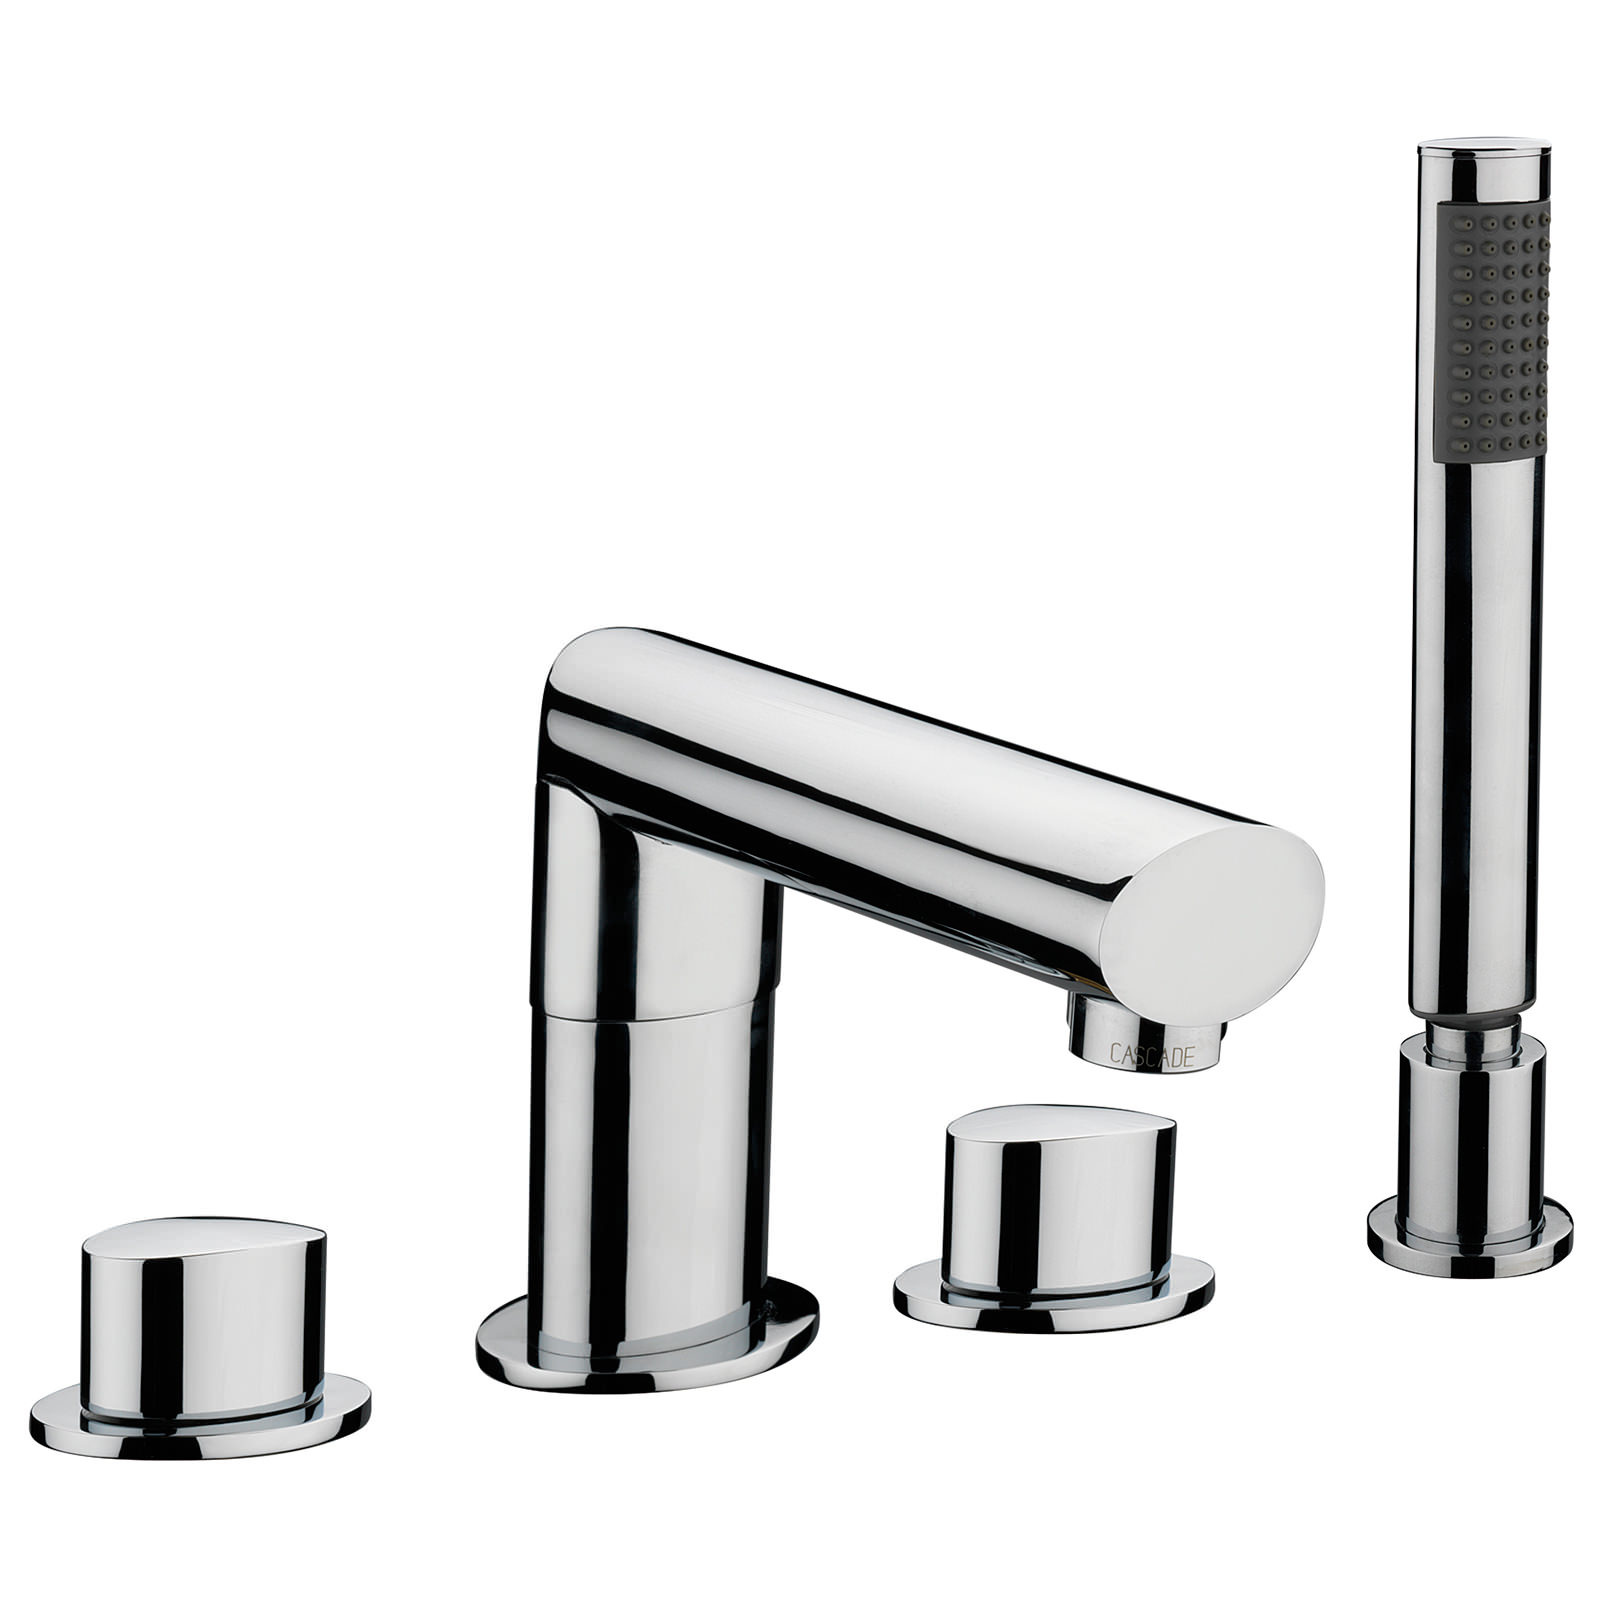 Wall Mounted Bath Shower Mixer Sagittarius Oveta 4 Hole Deck Mounted Bath Shower Mixer Tap